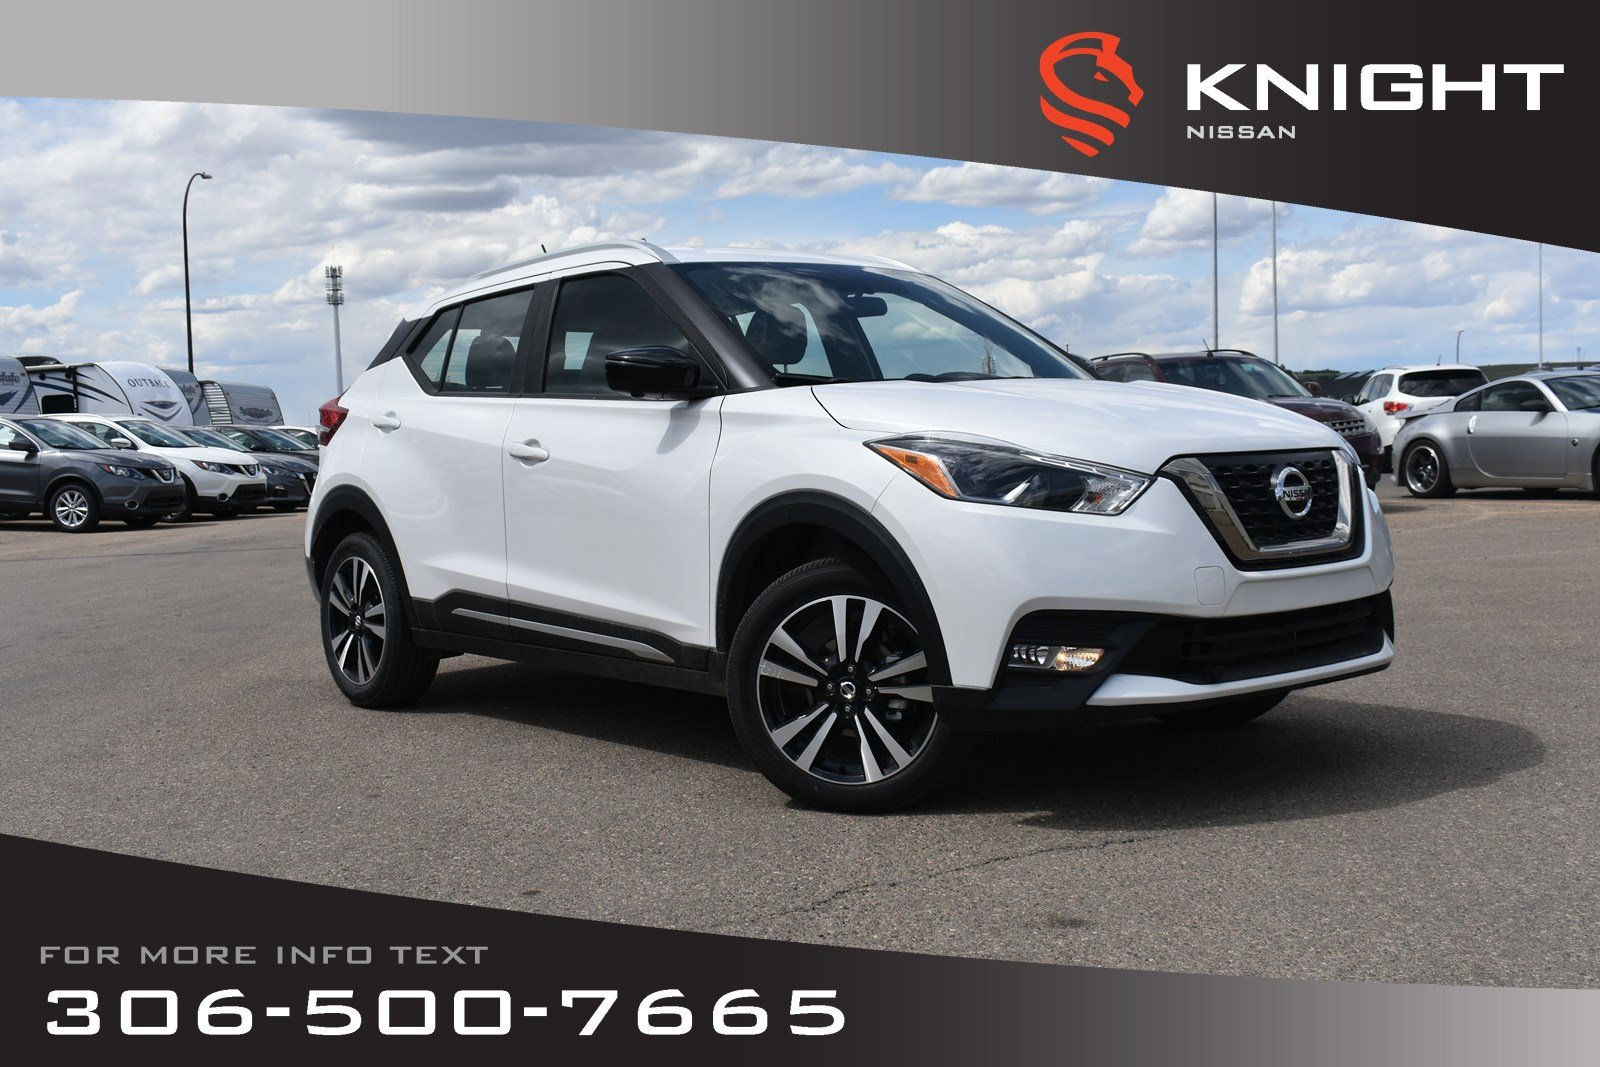 New 2019 Nissan Kicks SR | Leather | Remote Start | Heated Seats | Bose  System | Around View Monitor Sport Utility